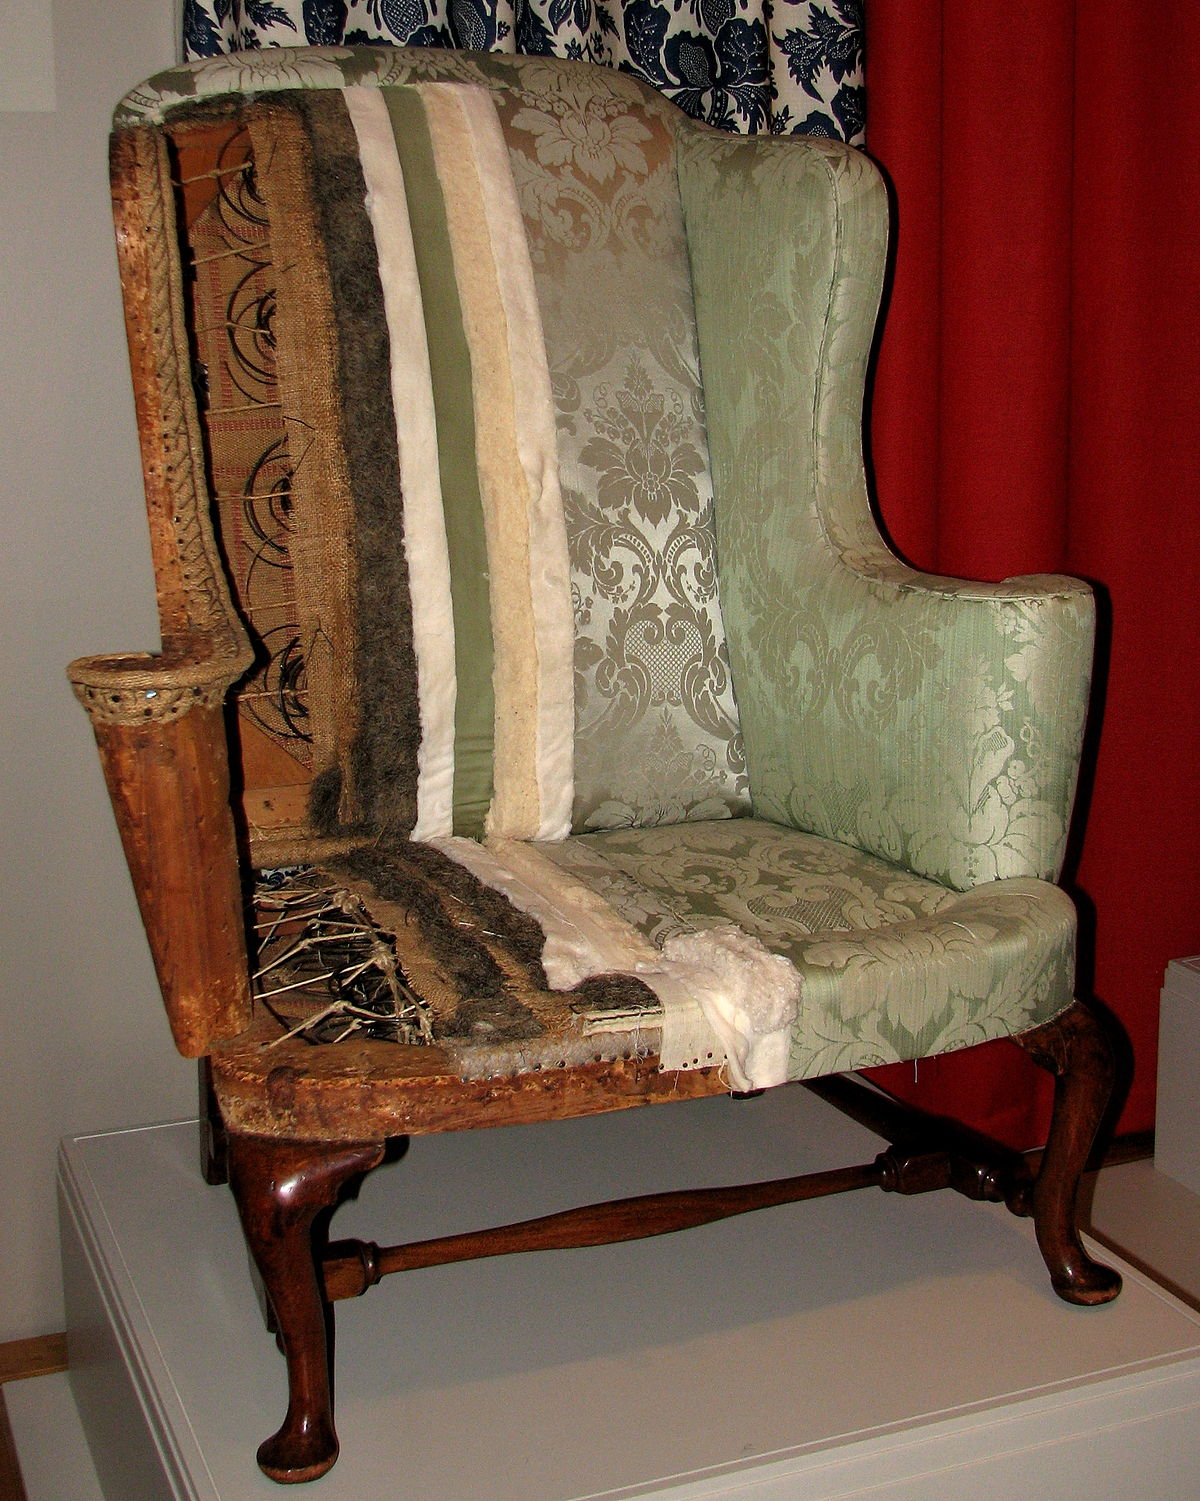 upholstery wikipedia On furniture upholstery